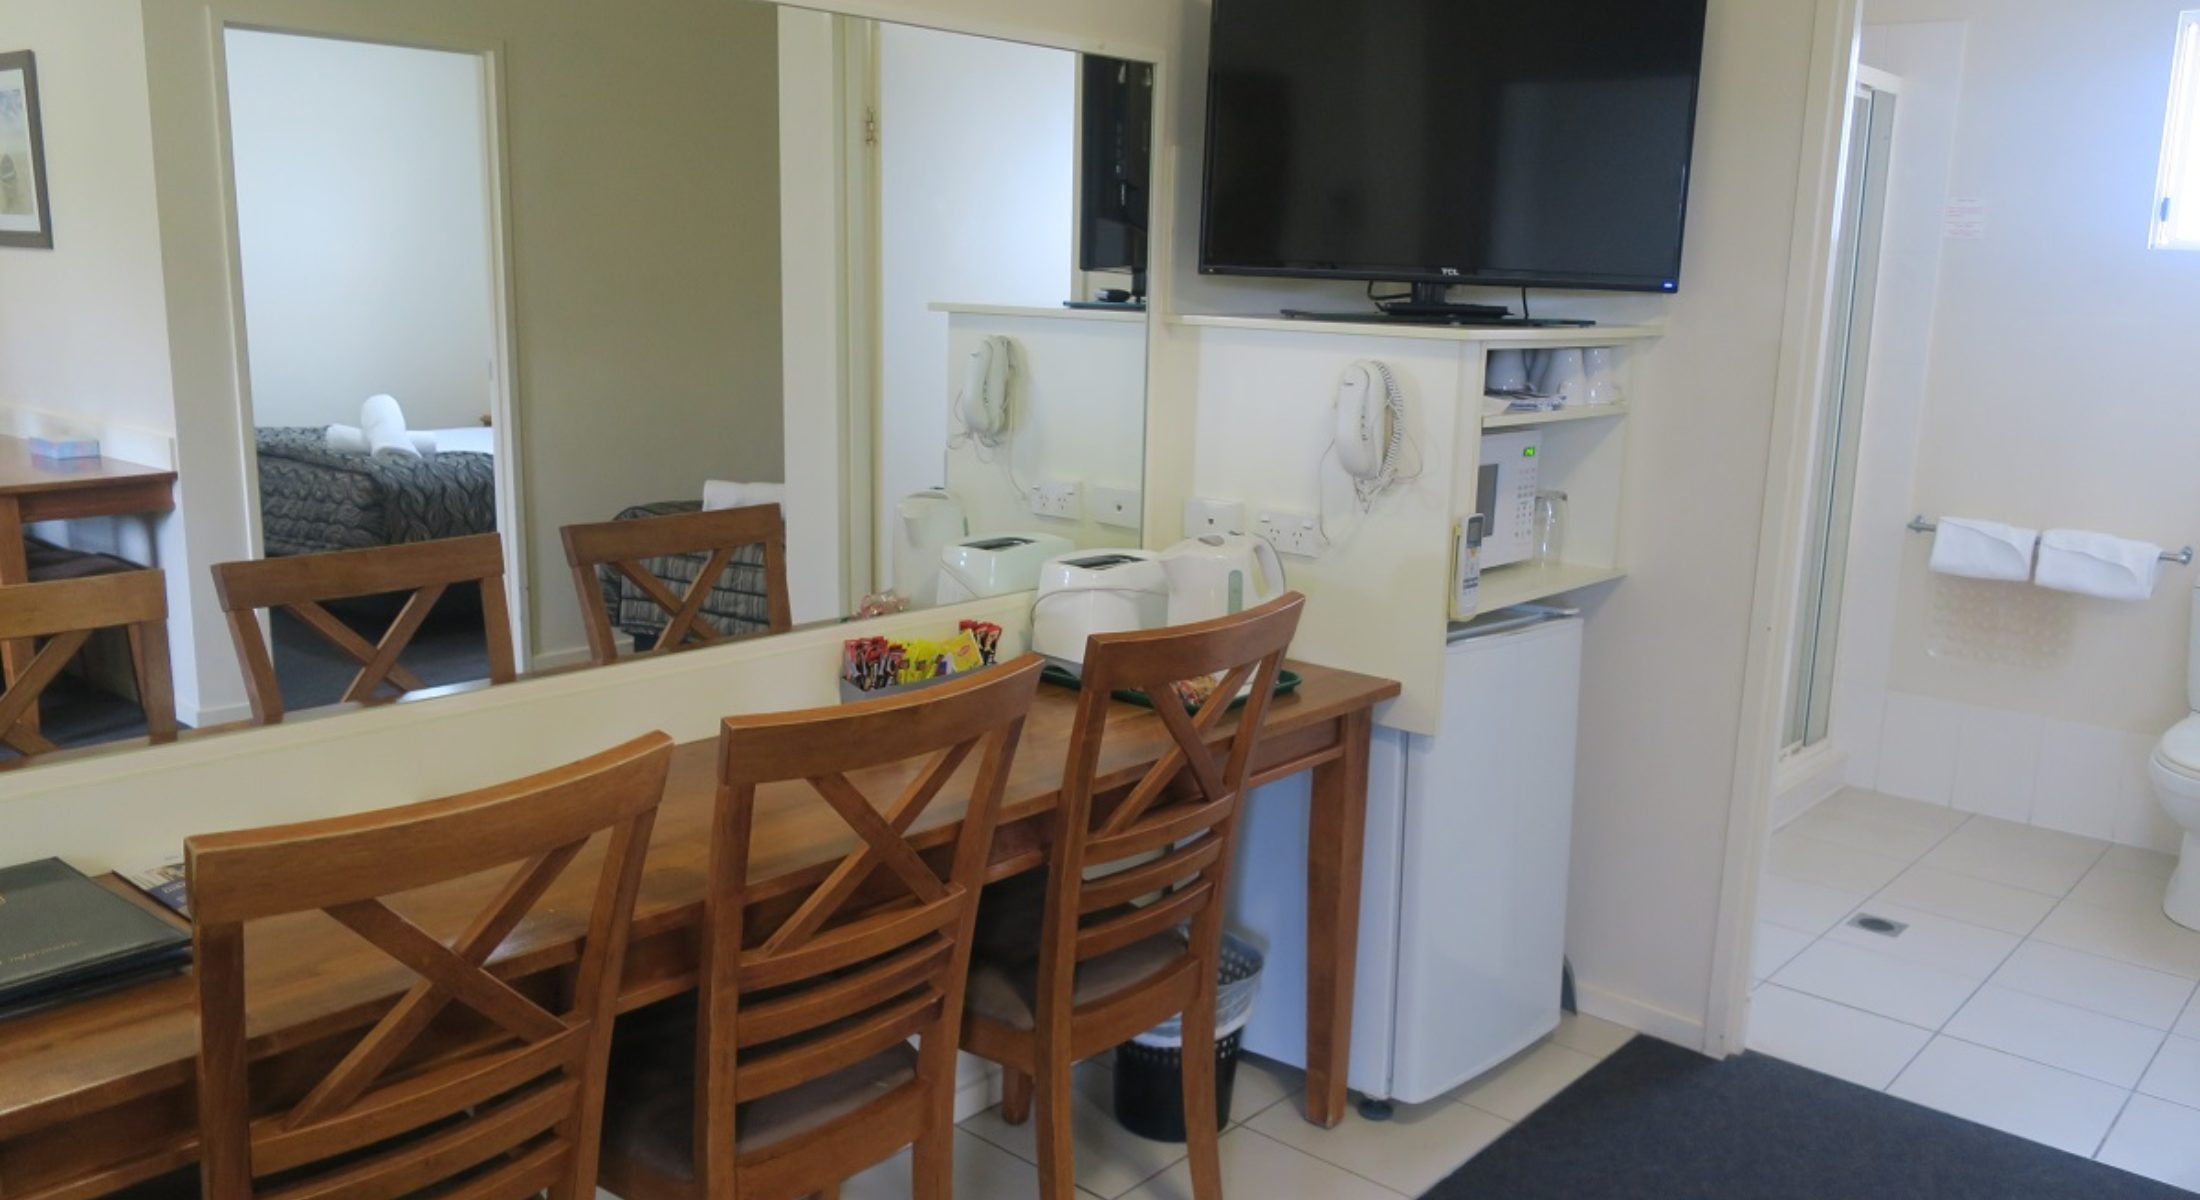 Office Furniture Caboolture Caboolture Motel Accommodation Near Brisbane Moreton Bay Region